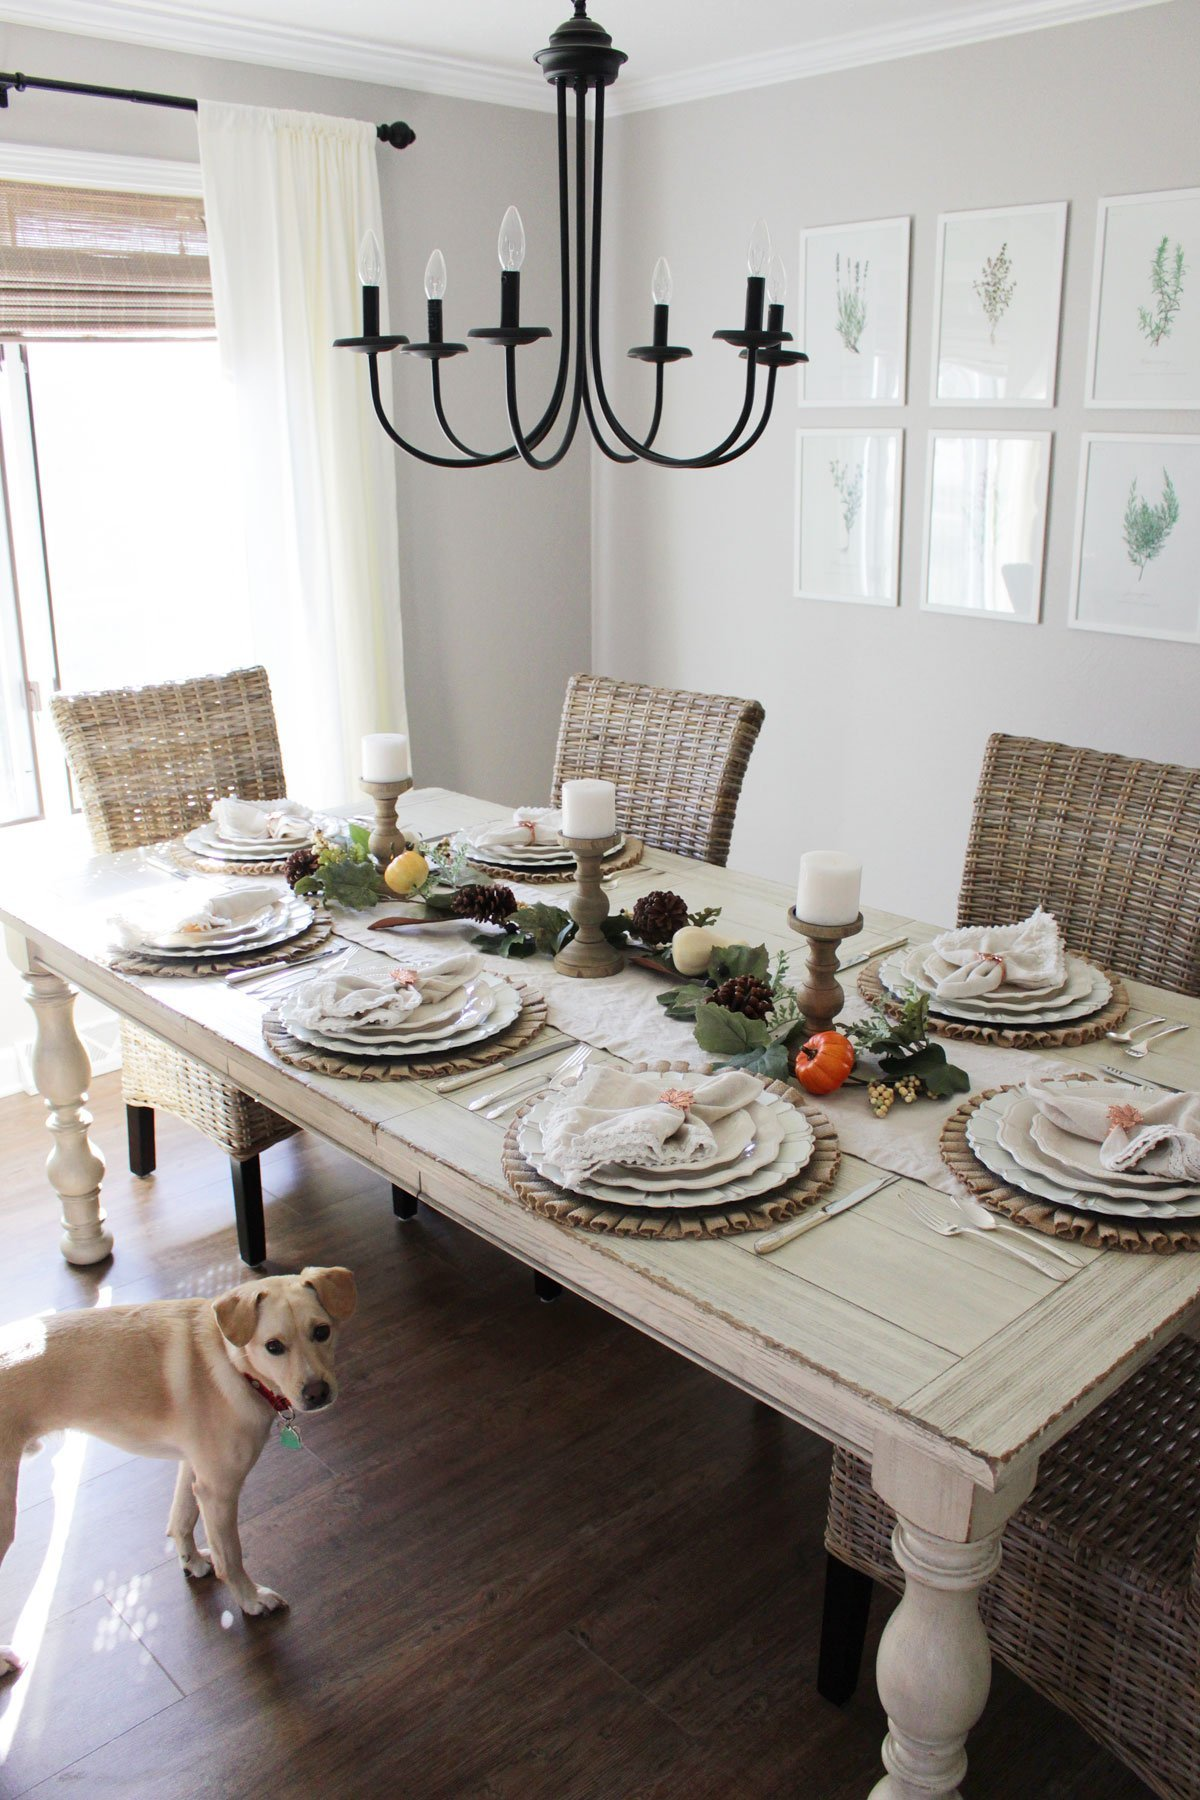 Our Farmhouse Inspired Thanksgiving Table Setting What